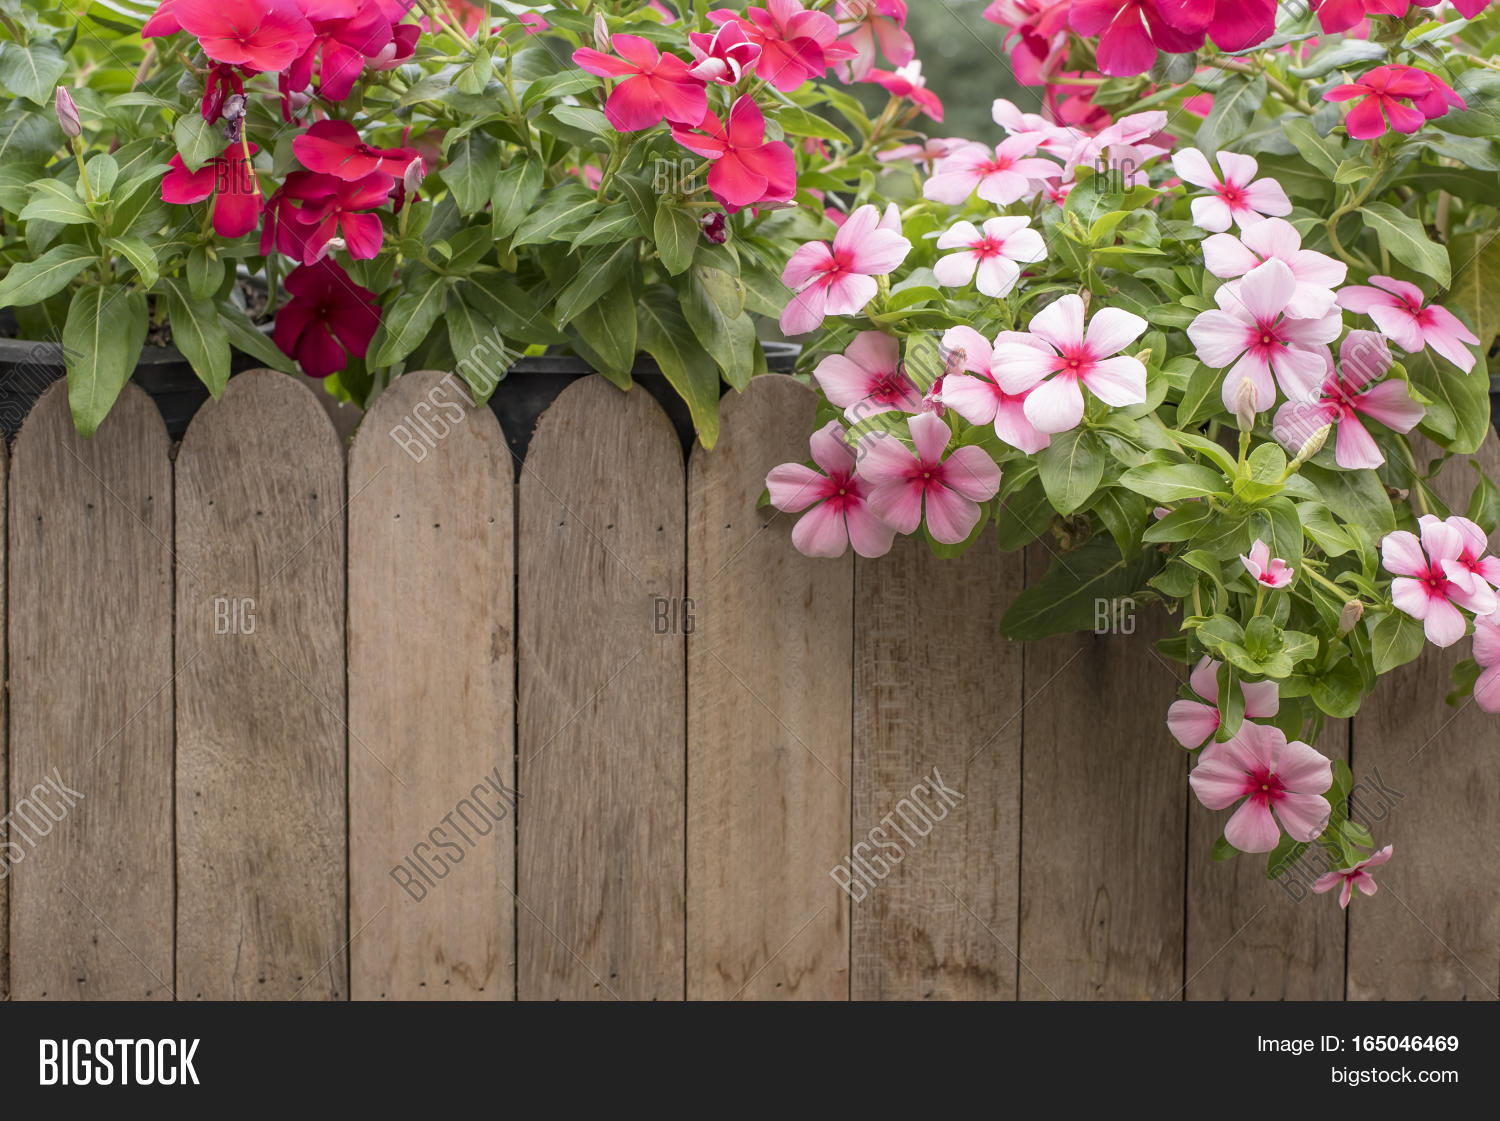 Pink Red Periwinkle Image Photo Free Trial Bigstock